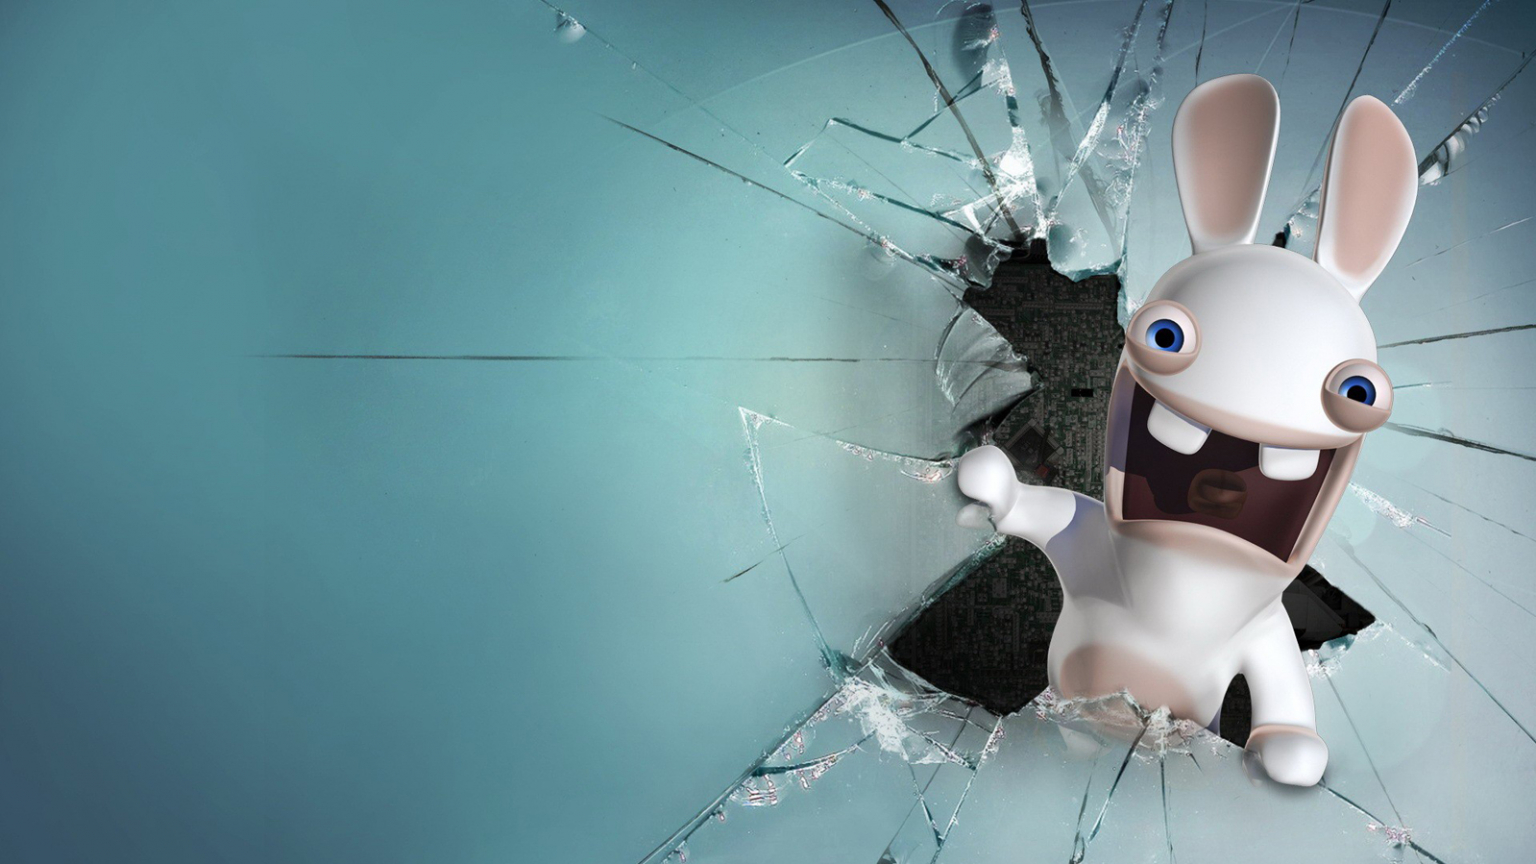 Hd Wallpapers For Pc Funny